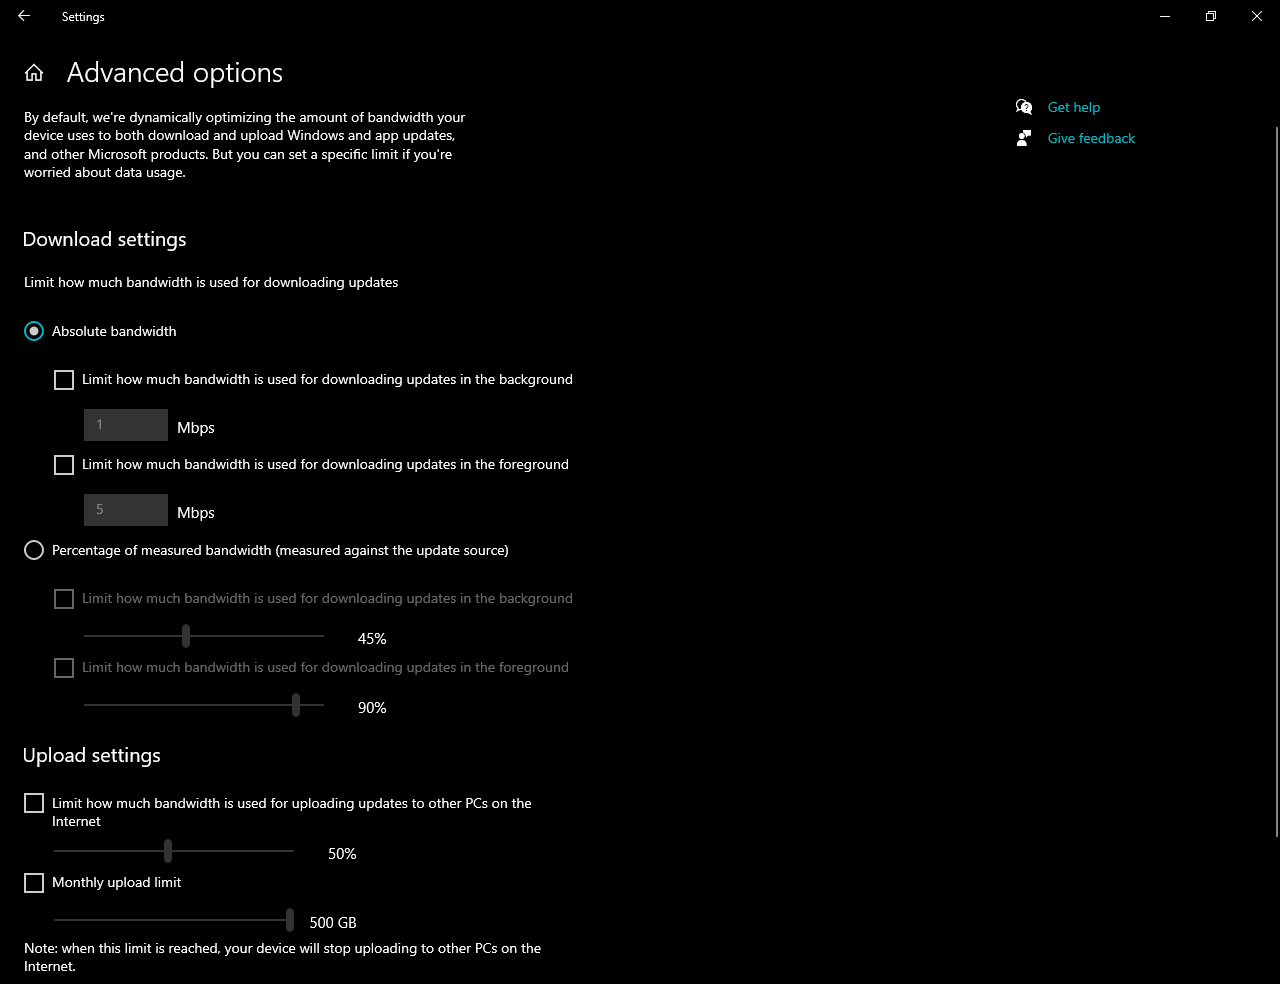 Option to manage download of Windows 10 updates